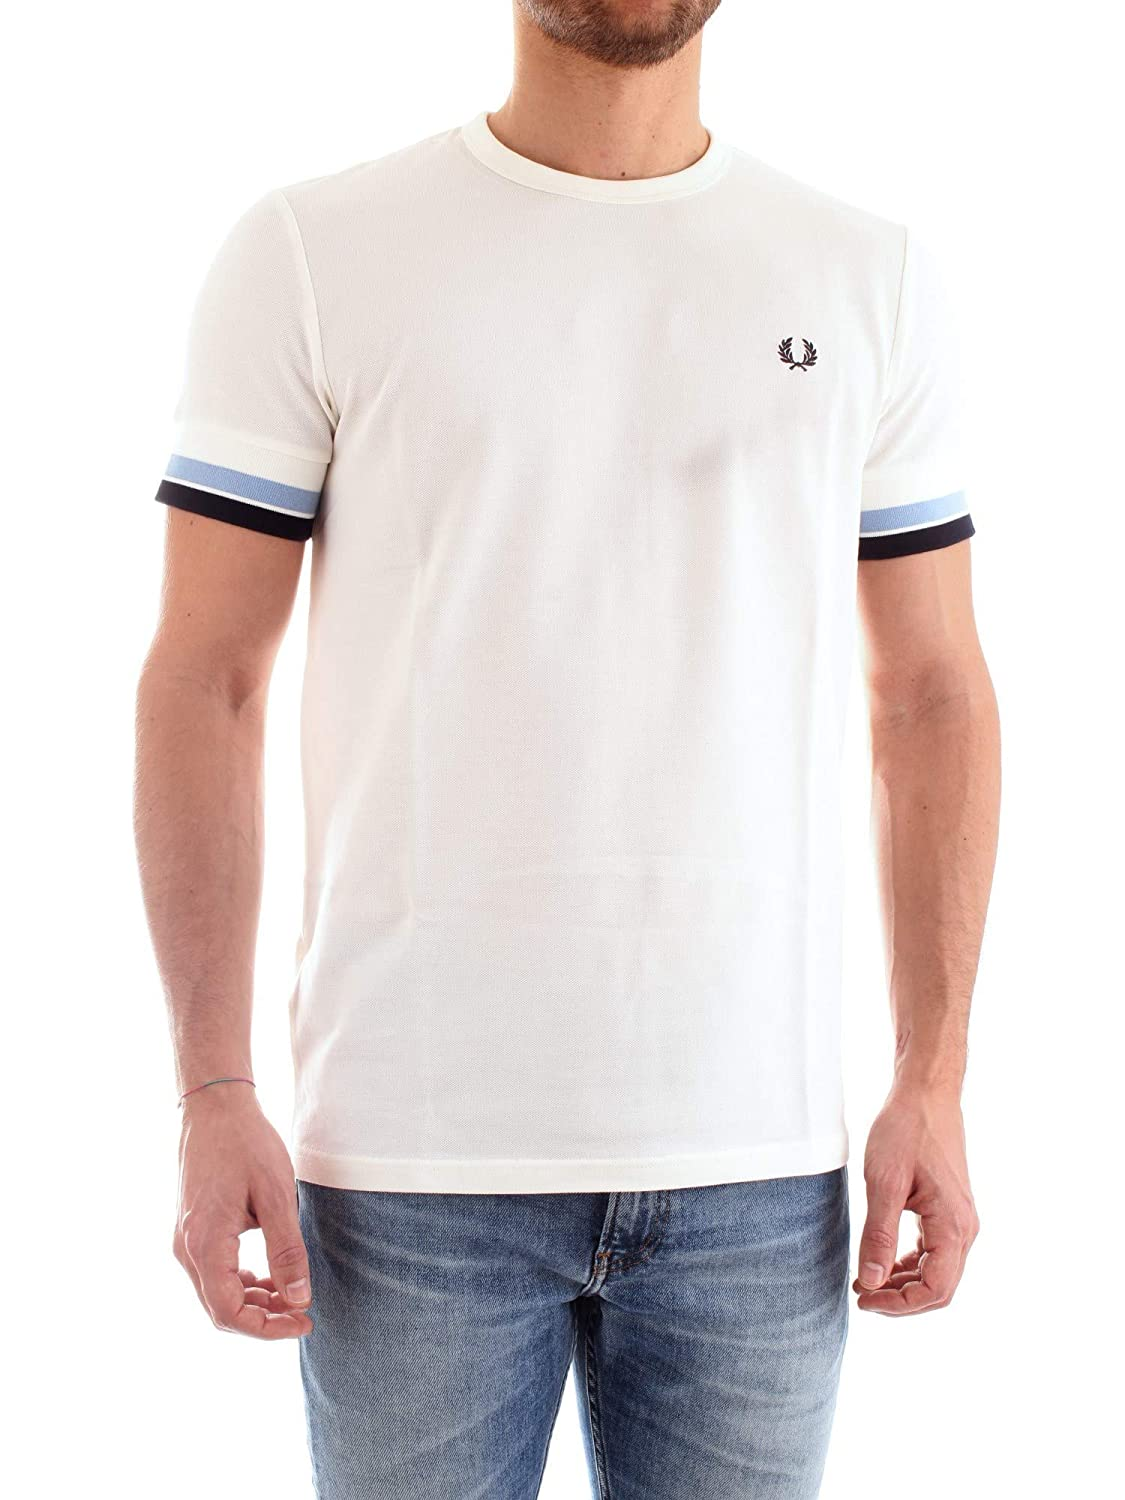 Fred Perry Hombres Camiseta con Punta audaz m6513 129 M Blanco ...